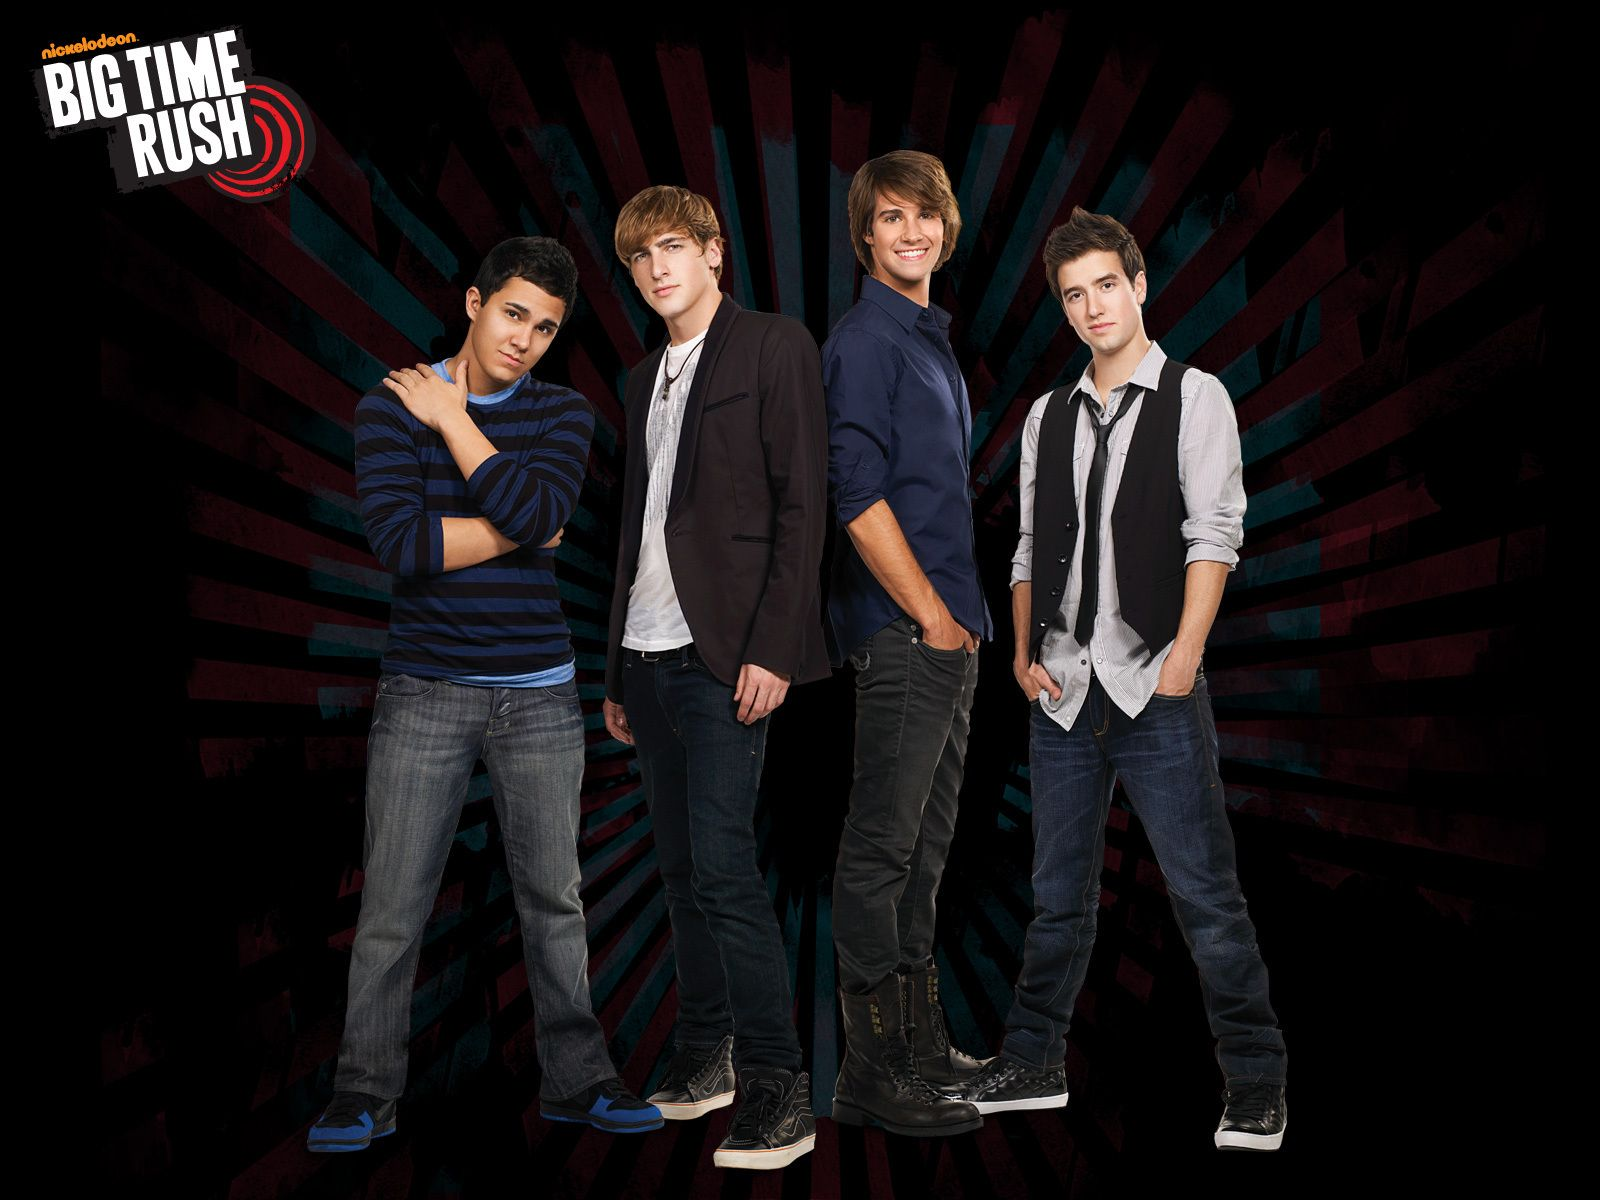 Image Detail For Big Time Rush Fans Big Time Rush Wallpaper 22817484 Fanpop Big Time Rush Big Time Big Time Rush Carlos